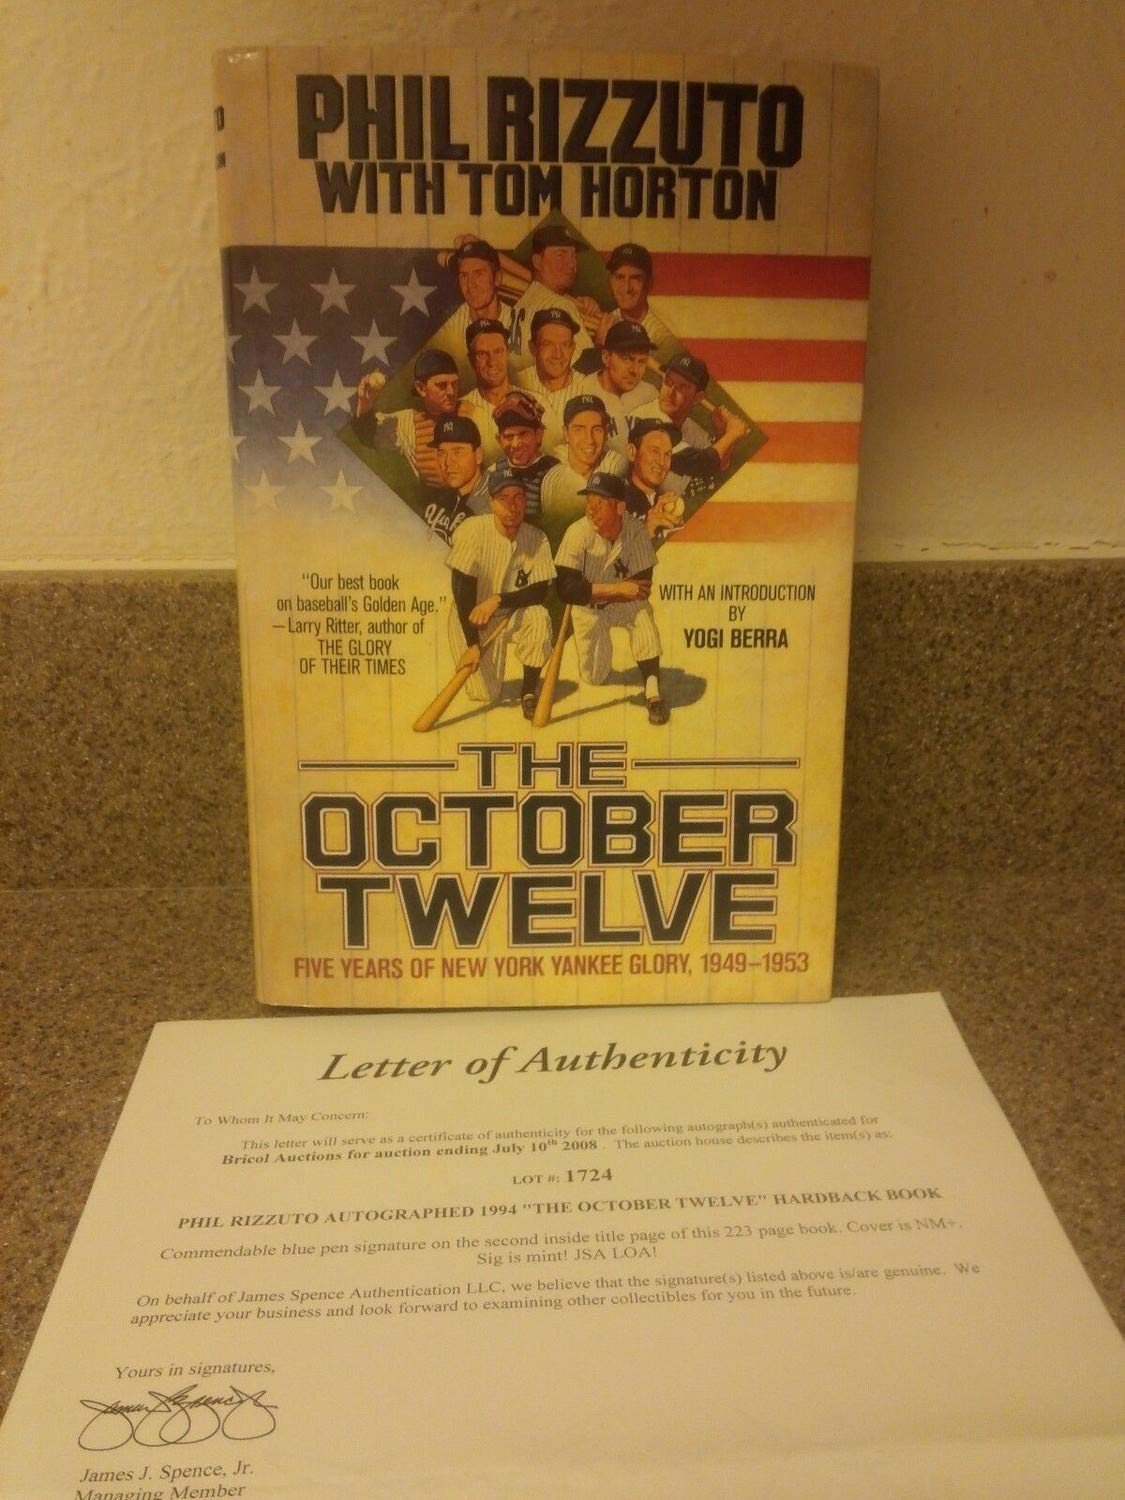 Phil Rizzuto Autographed Signed The October Twelve Hardback Book Loa From JSA